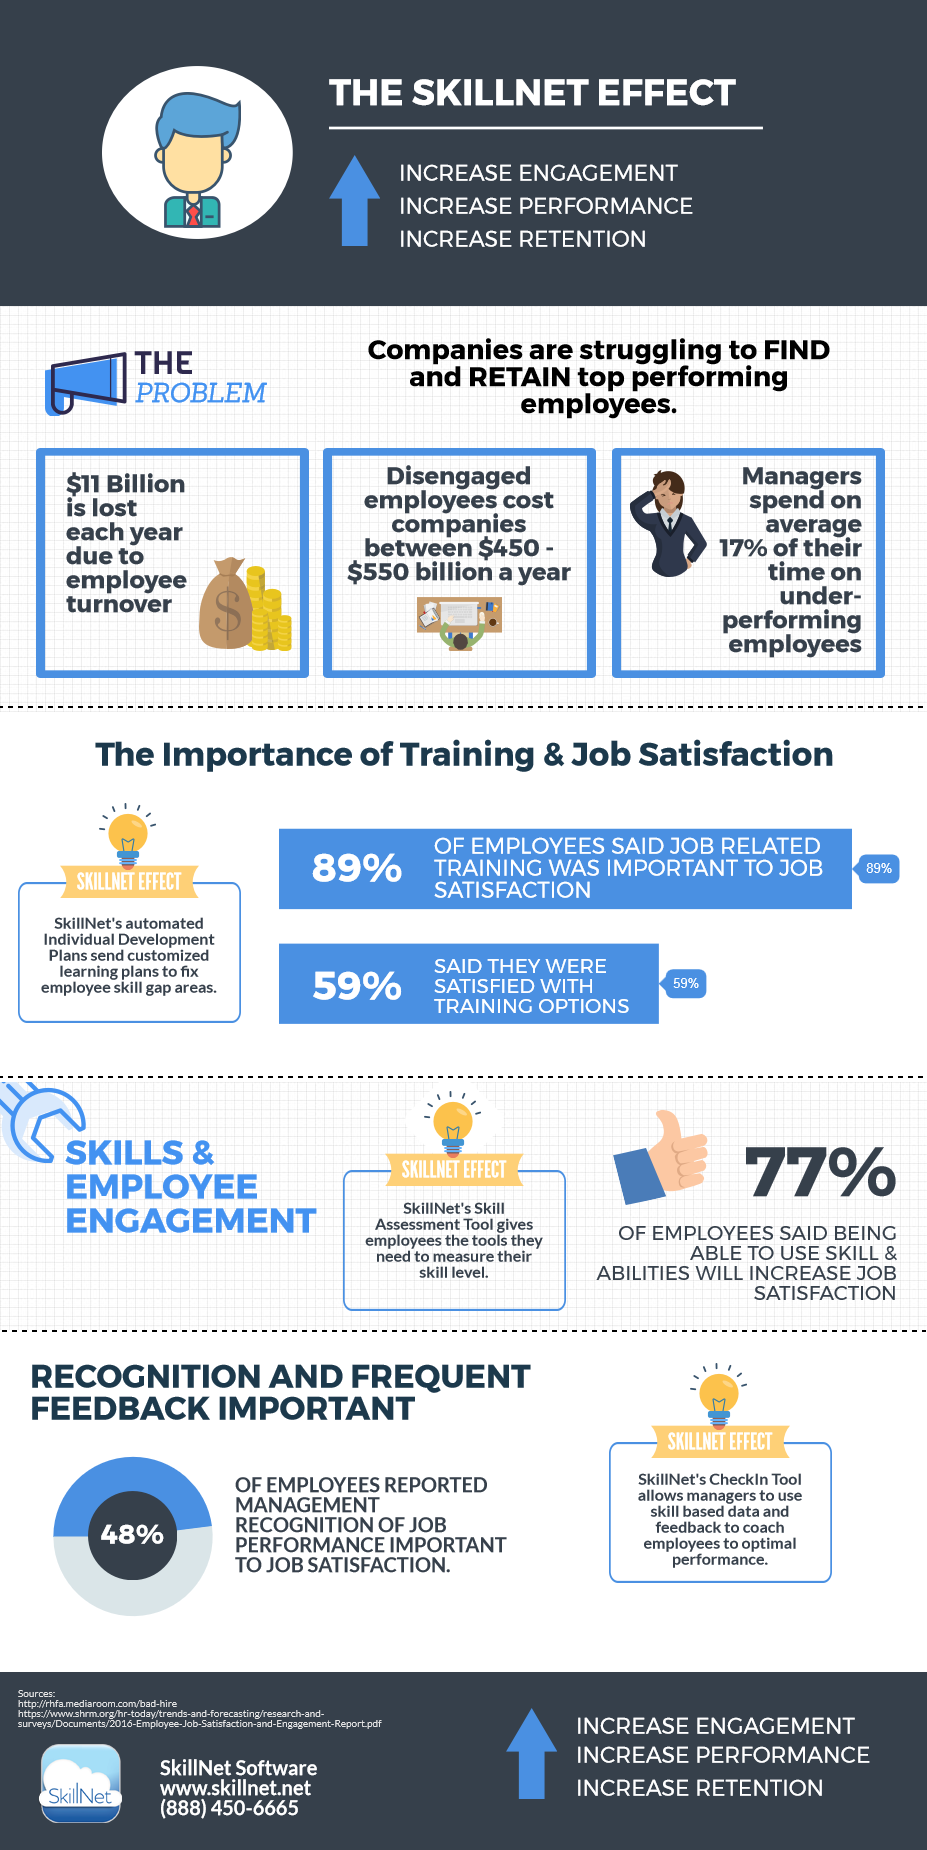 The SkillNet Effect Infographic